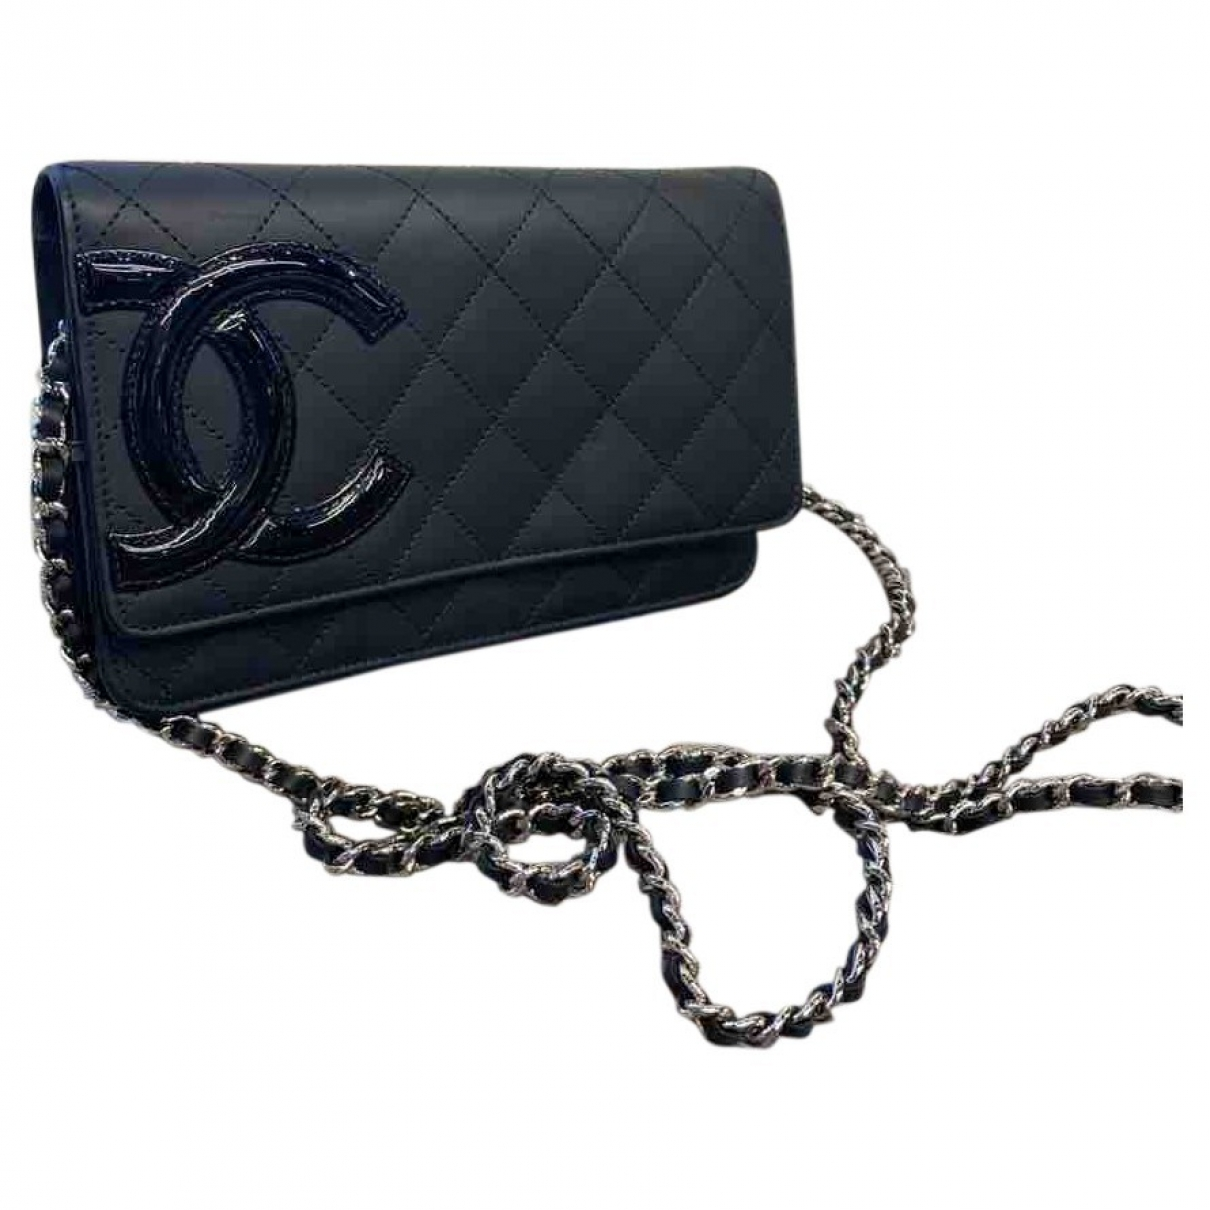 Chanel Cambon Black Leather Clutch bag for Women \N